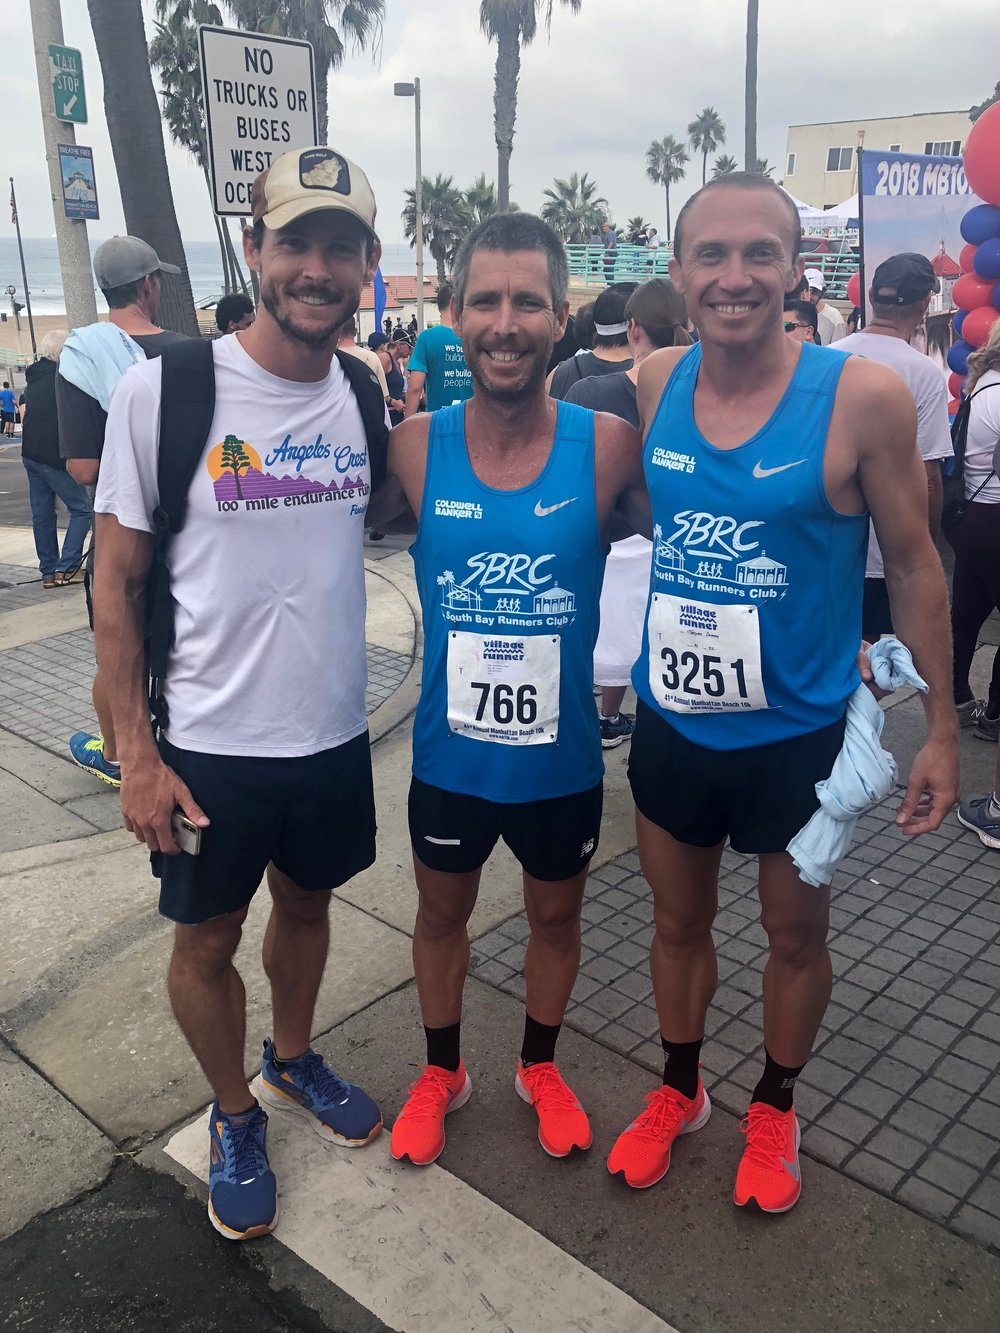 Manhattan Beach 10k w/ Gavin Wolfe and Sean Goodsell (finished the 10k in 37:28)